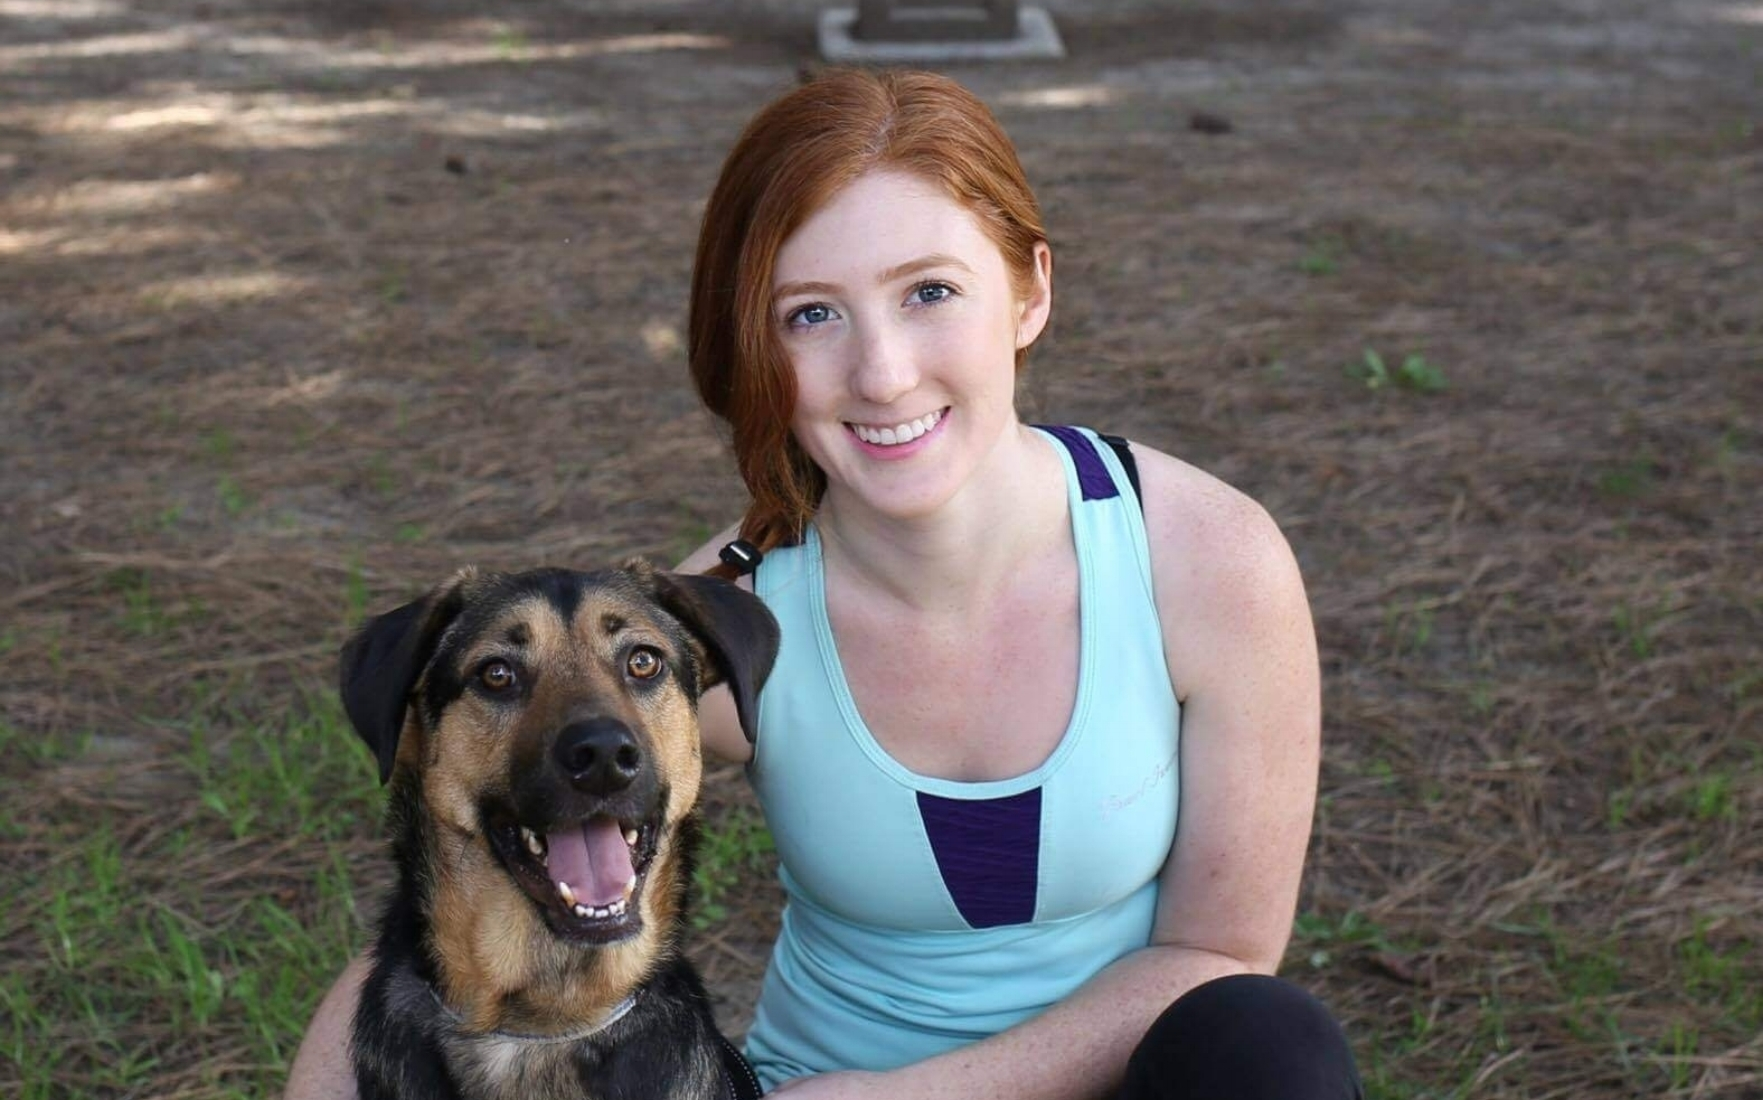 Dog Trainer Lydia Hunter is positive reinforcement dog trainer at Dog Savvy Los Angeles.